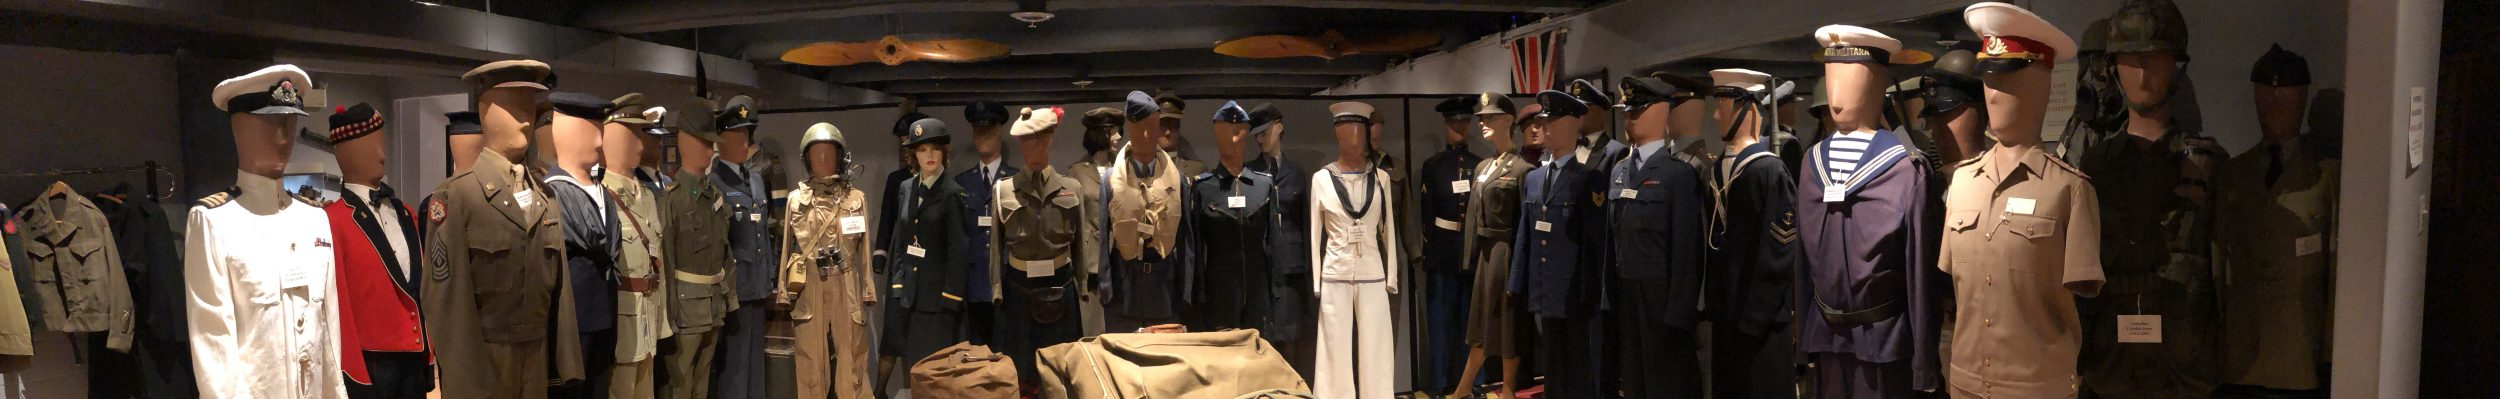 The Bunker Military Museum Collection